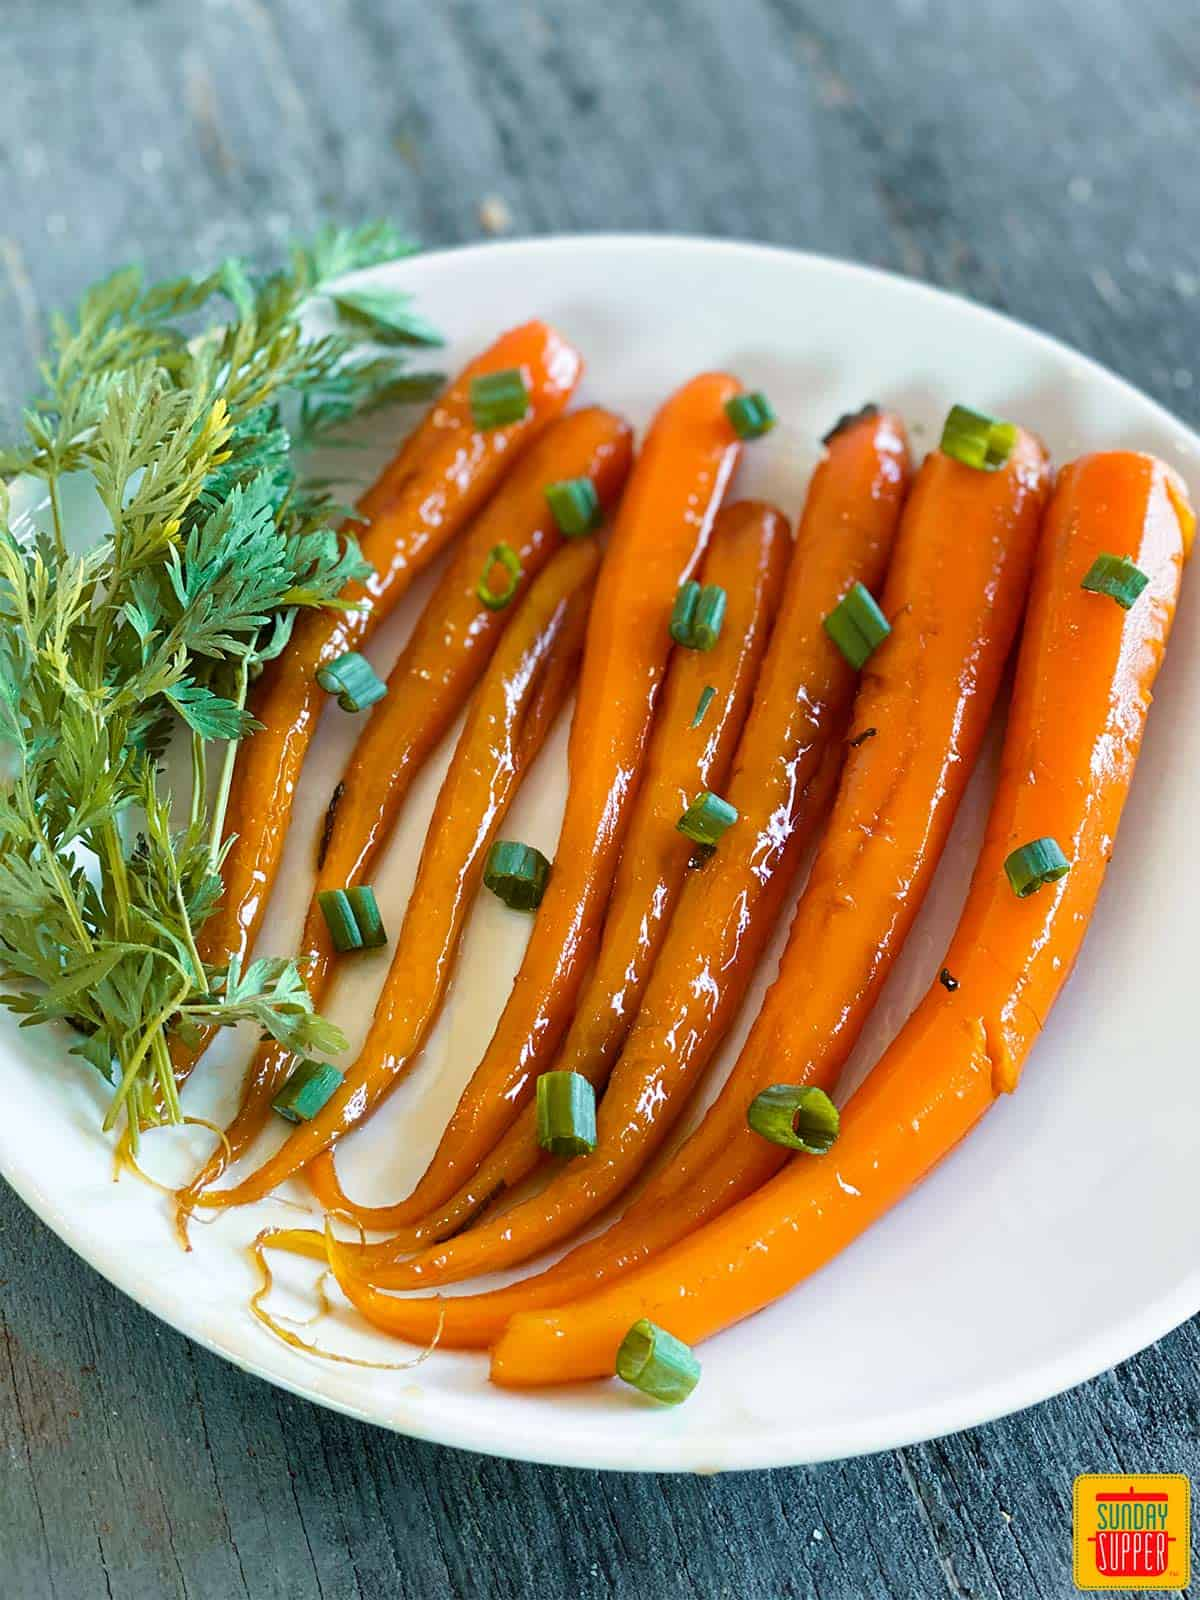 Candied carrots close up on a white plate